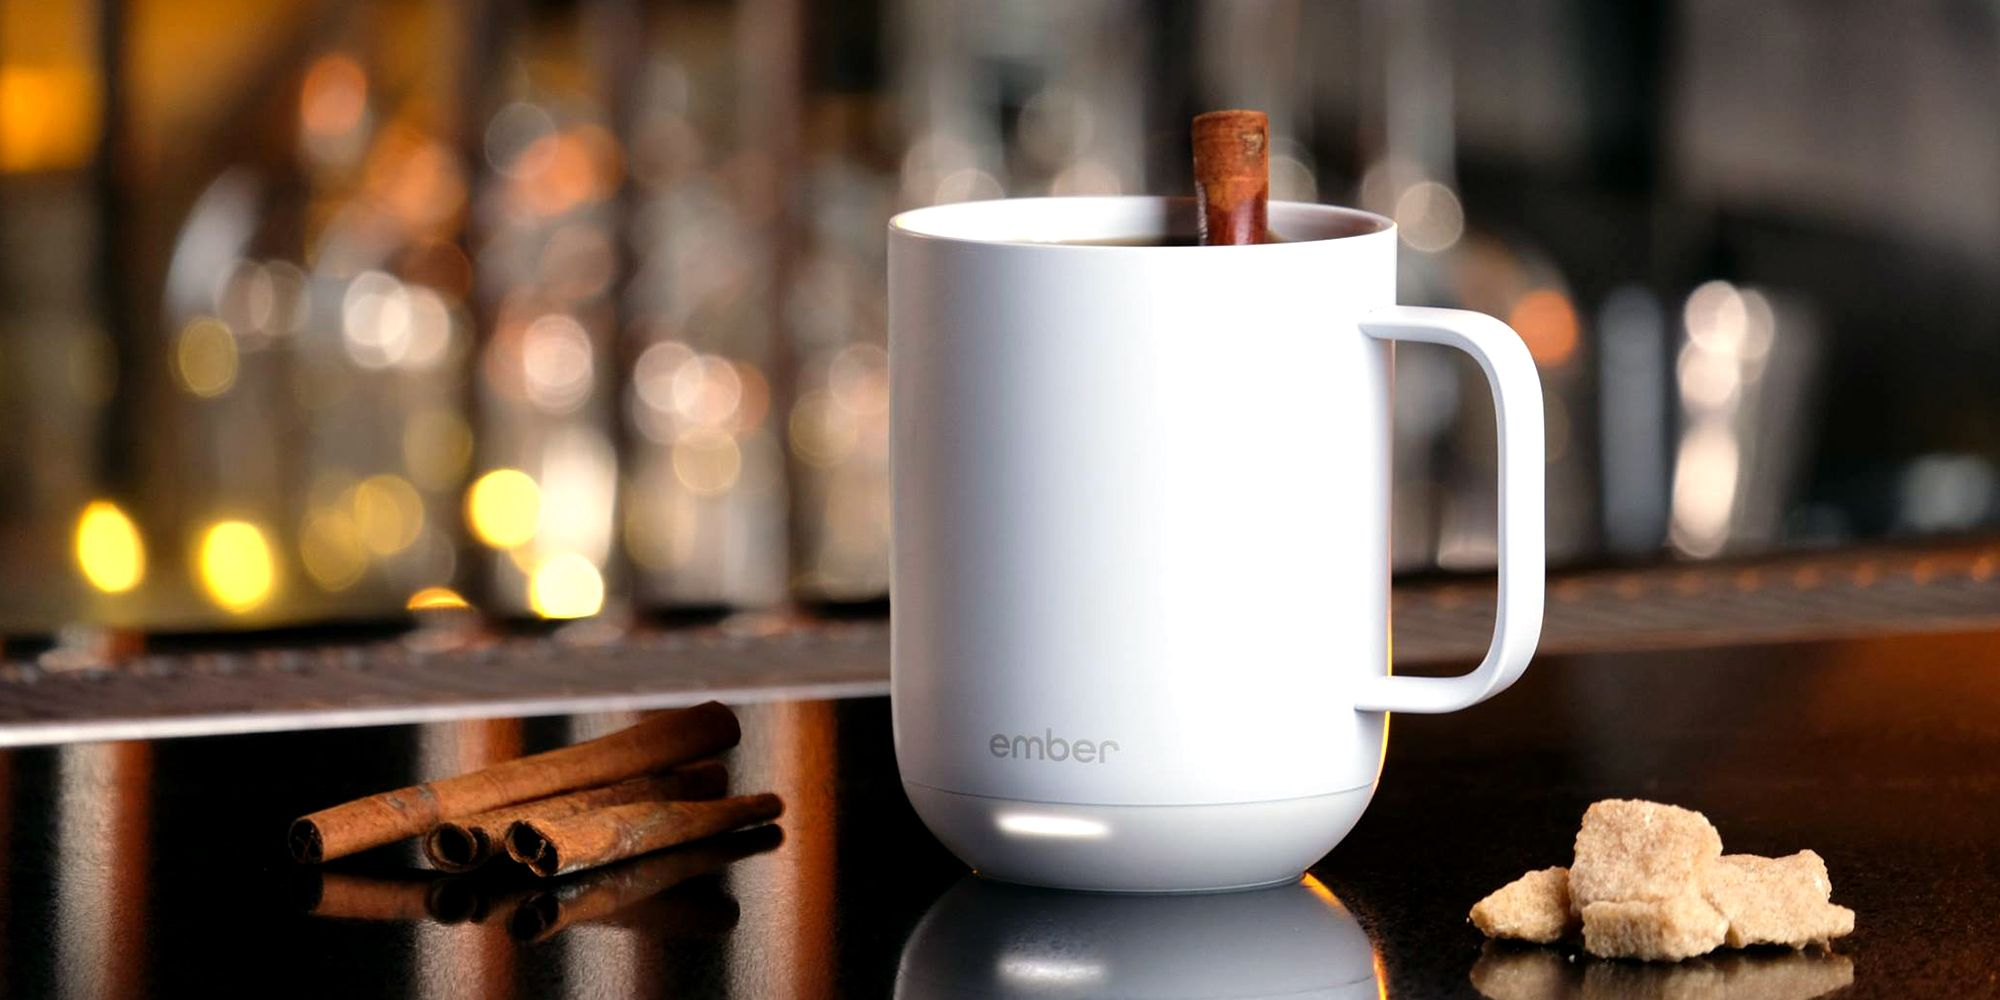 10 Best Mug Warmers For Your Coffee